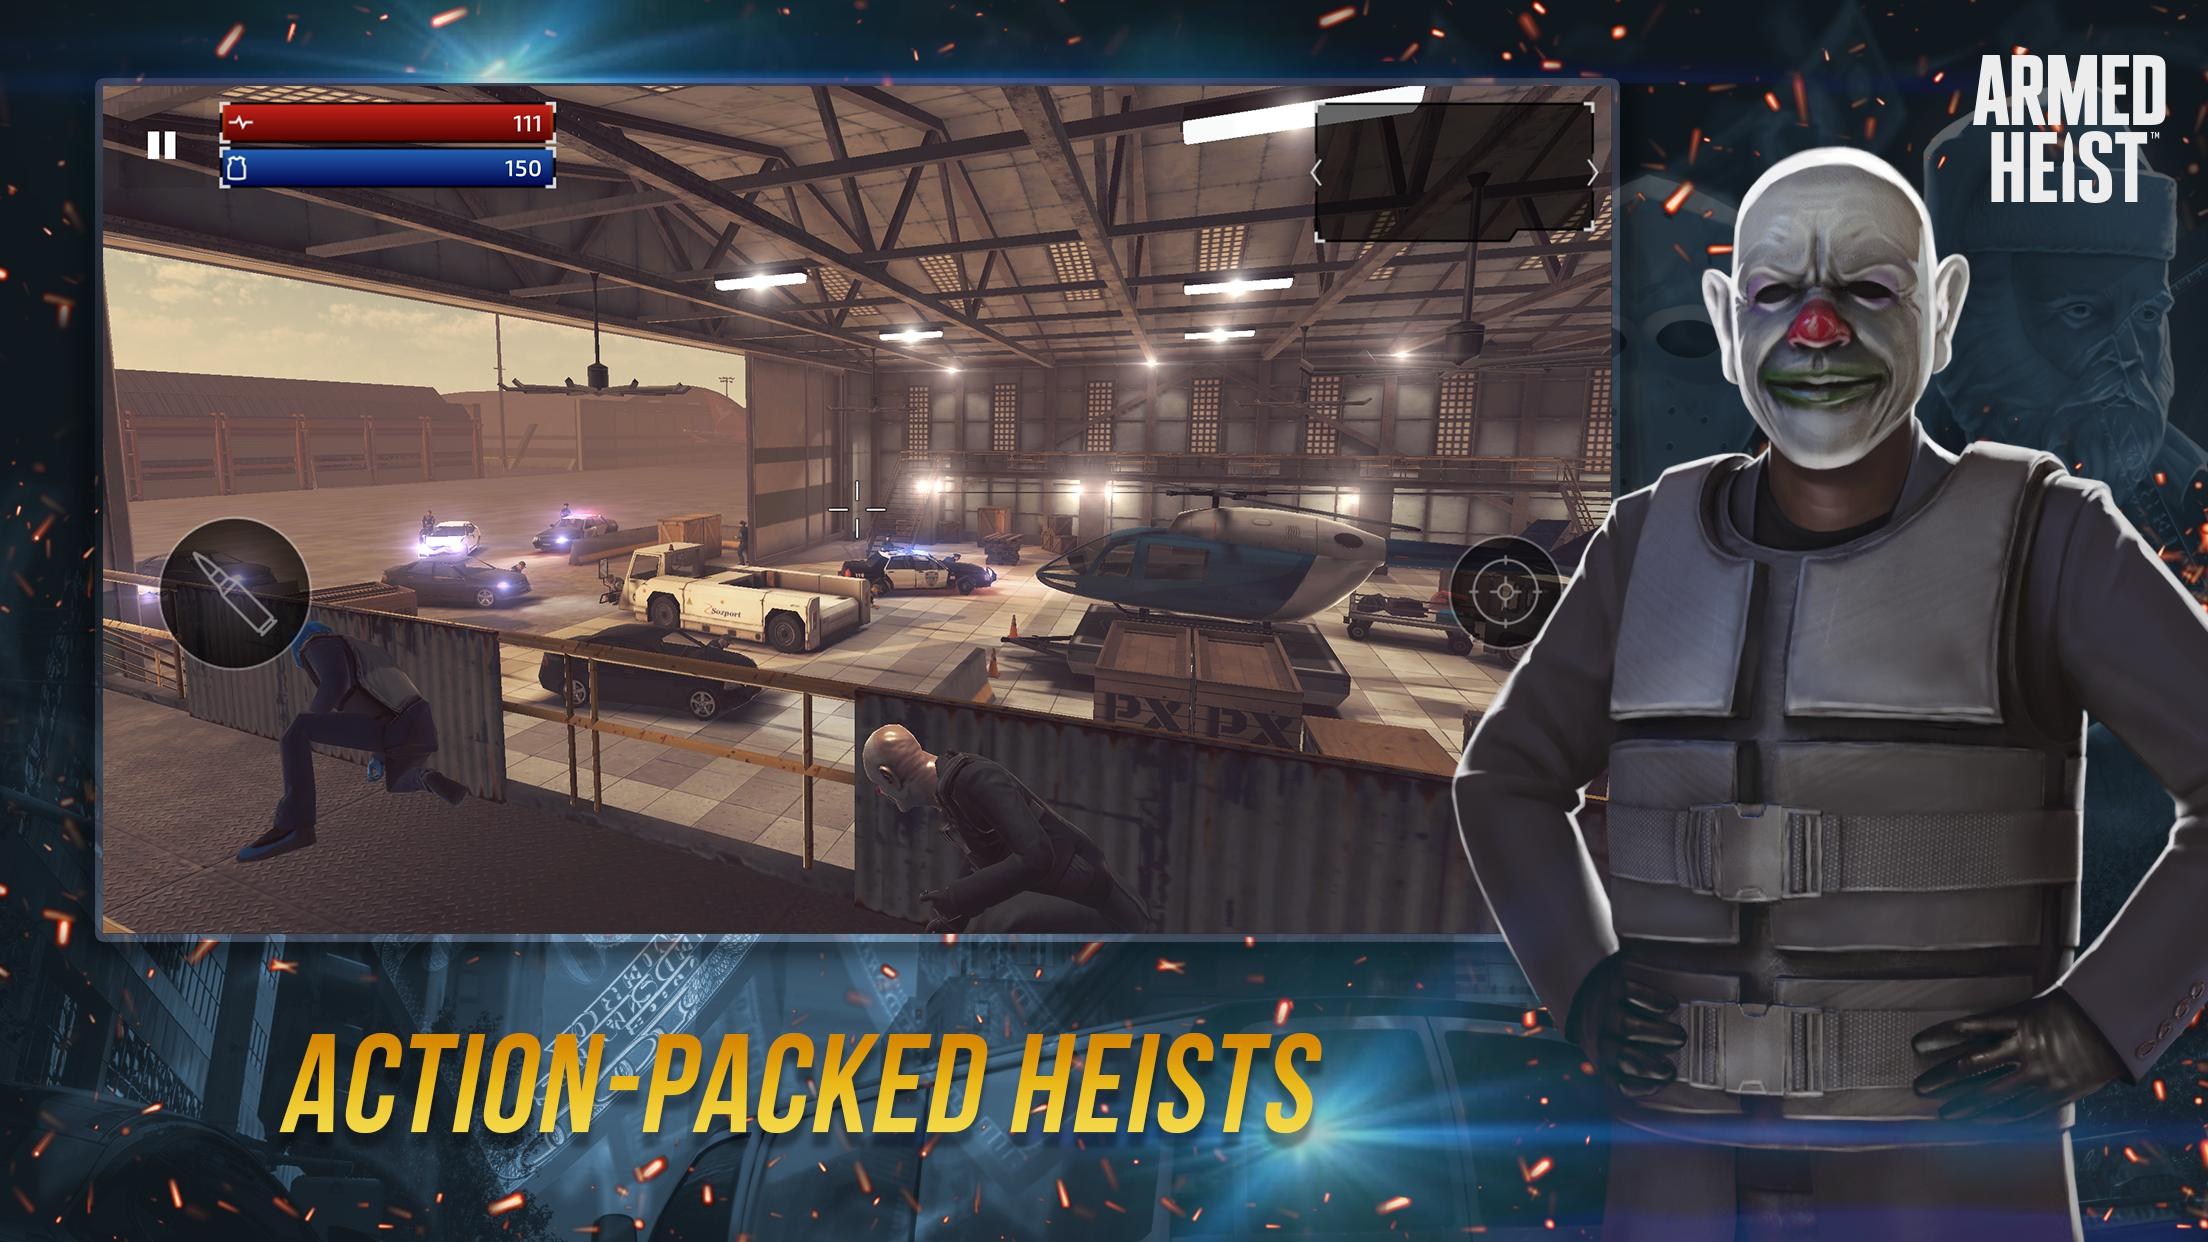 Armed Heist TPS 3D Sniper shooting gun games 2.1.1 Screenshot 7